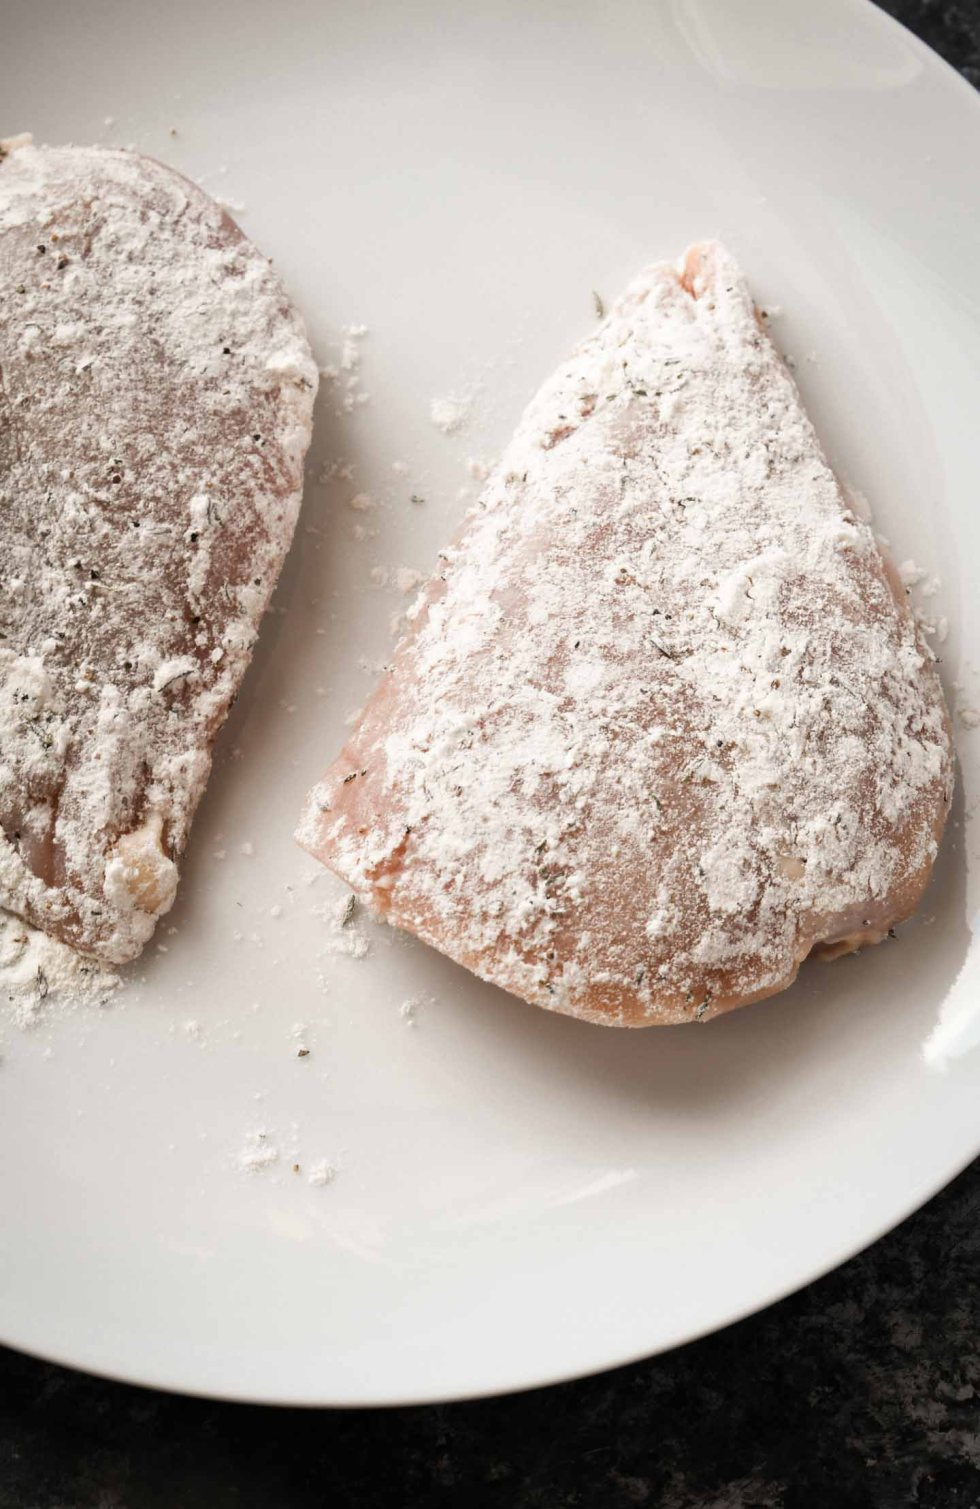 Floured chicken breasts on a white plate